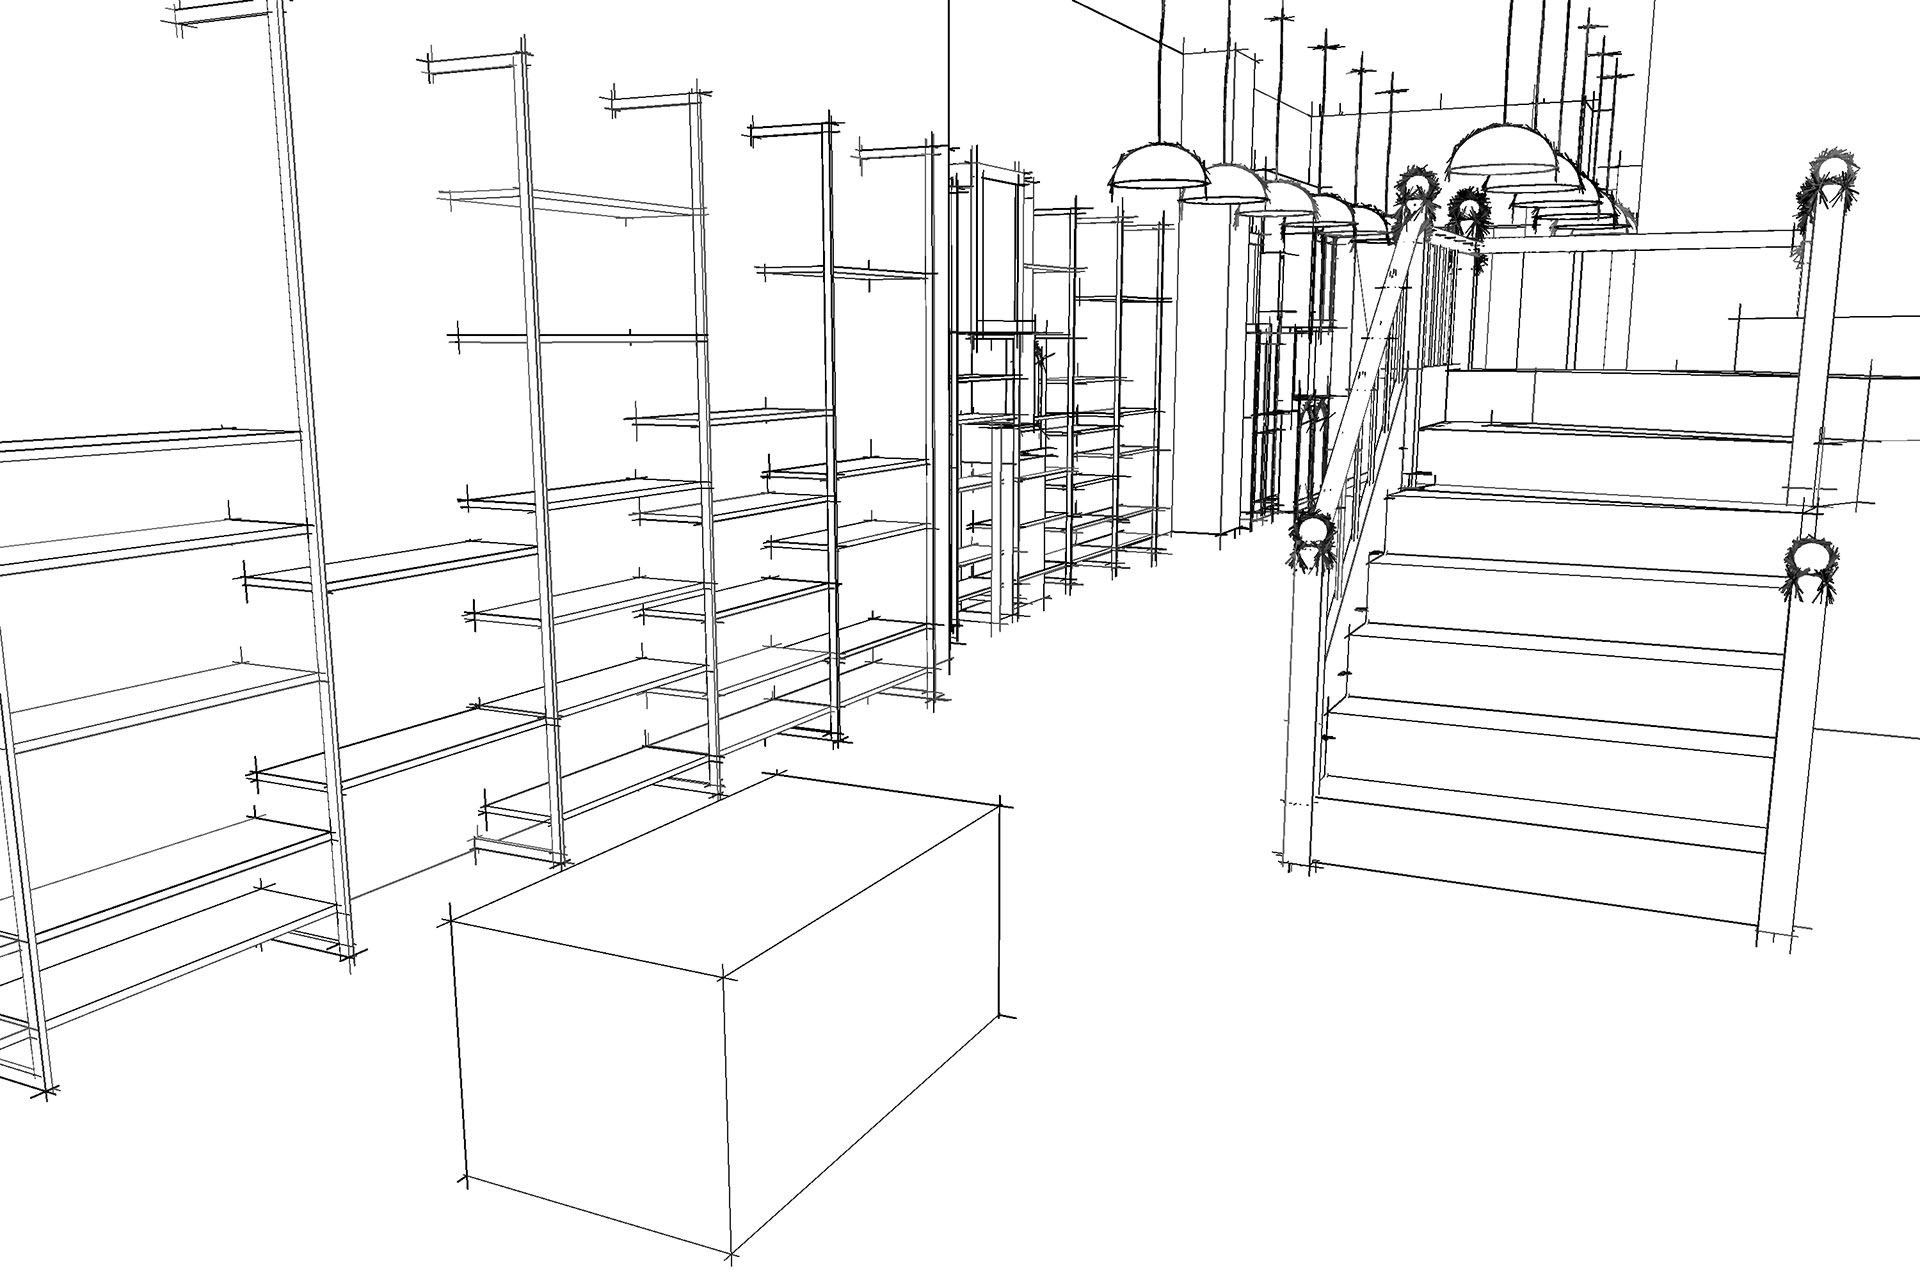 3D visualisations for retail design at Uneeka Truro